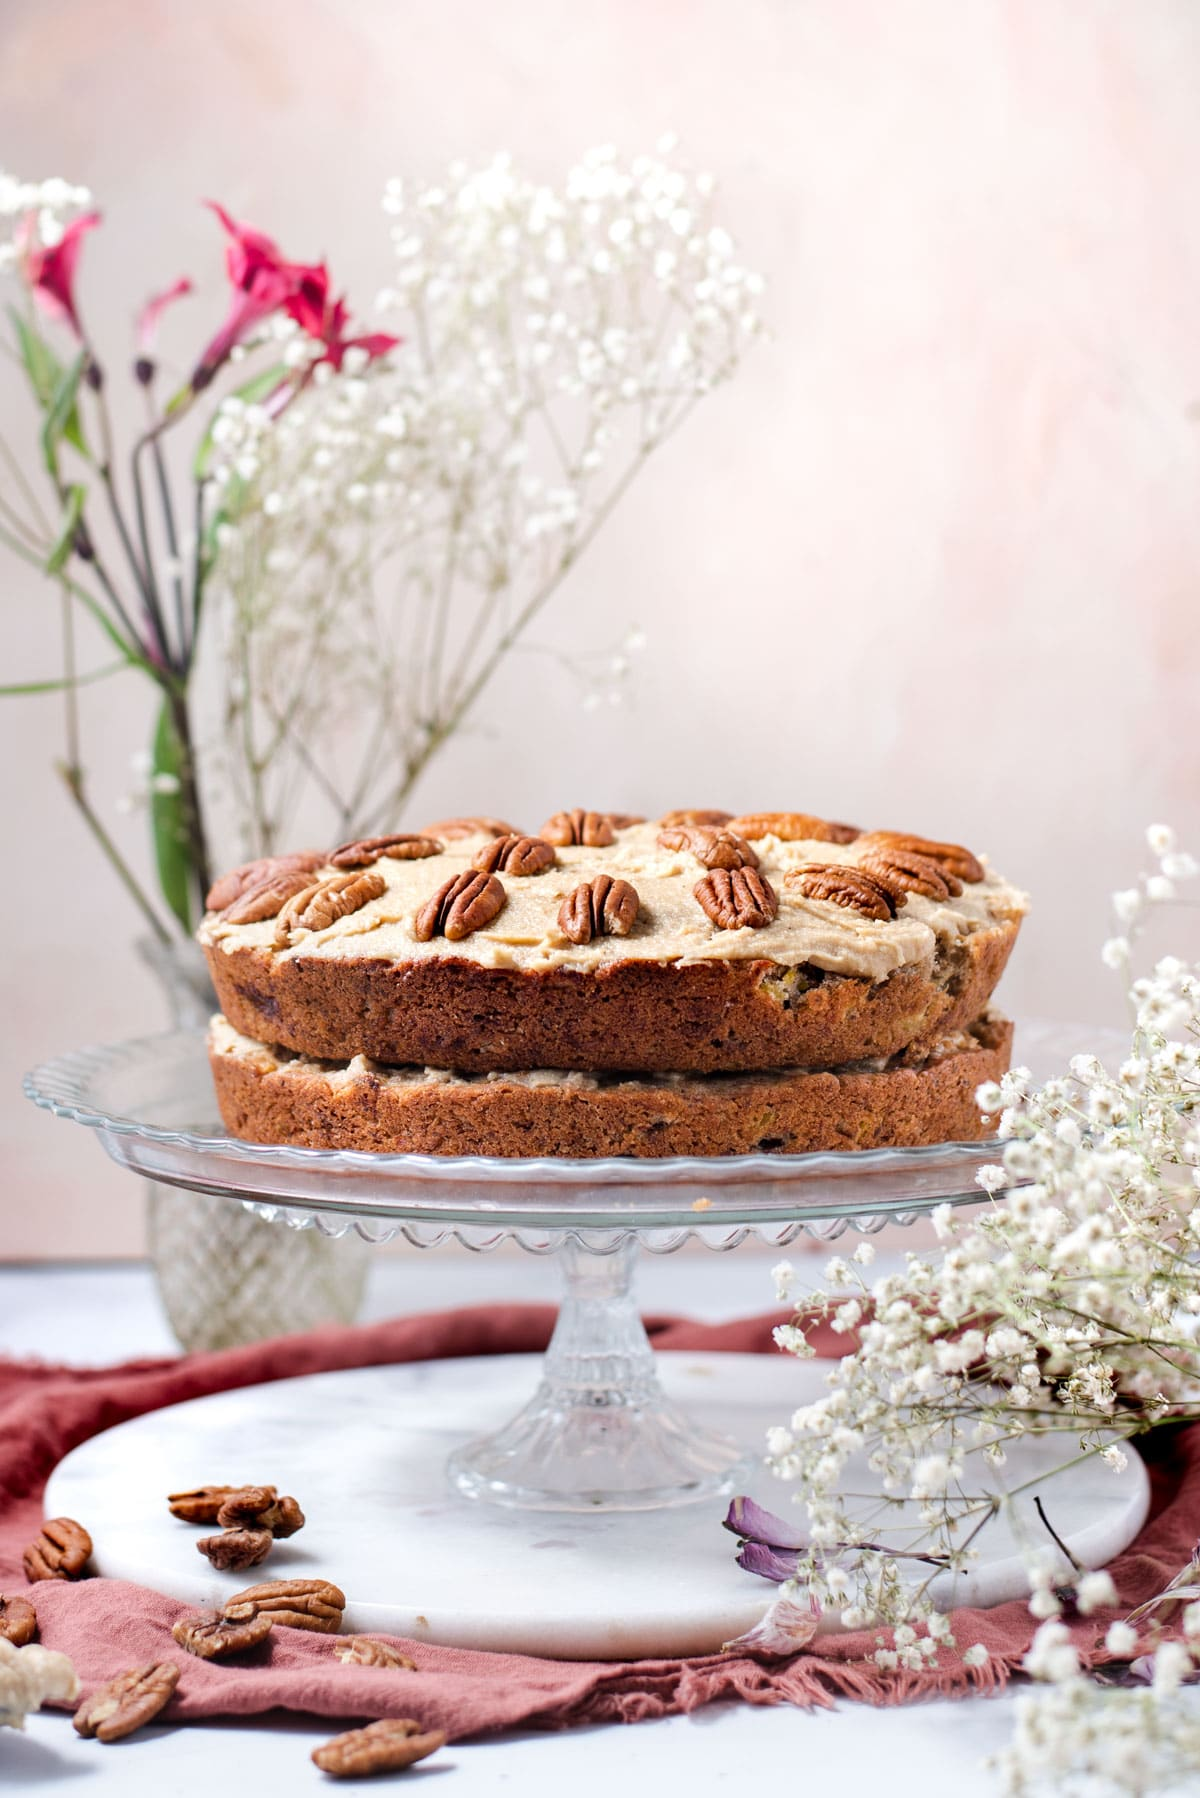 Hummingbird cake on a glass cake stand surrounded by small white flowers